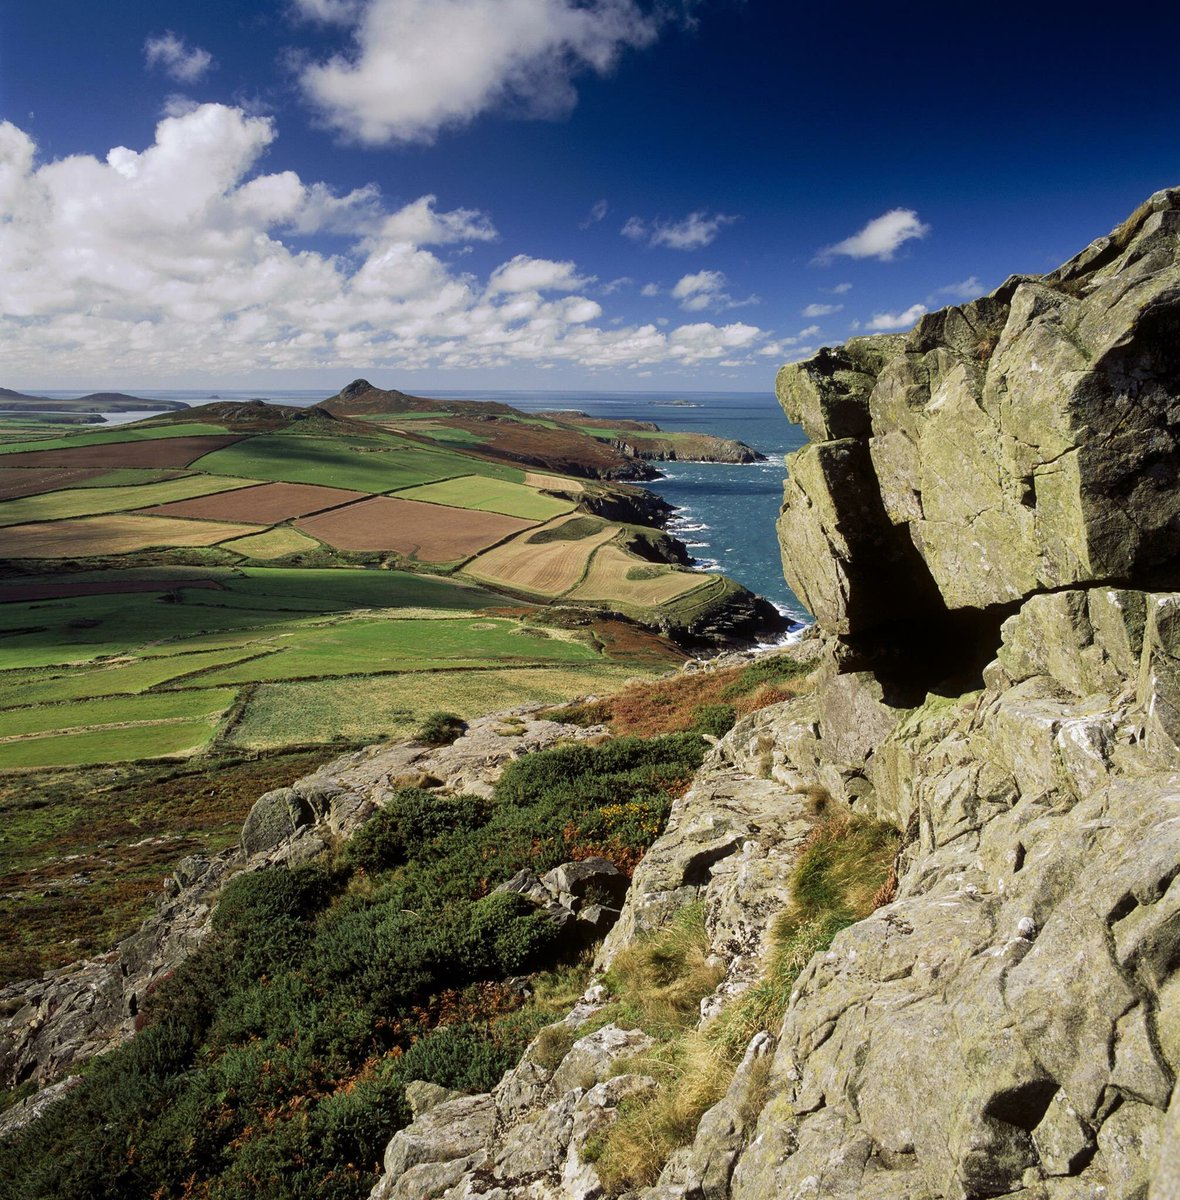 From our hidden gems to our world class landscapes, we're proud of our language, culture and heritage #StDavidsDay https://t.co/FEtRO49bAN